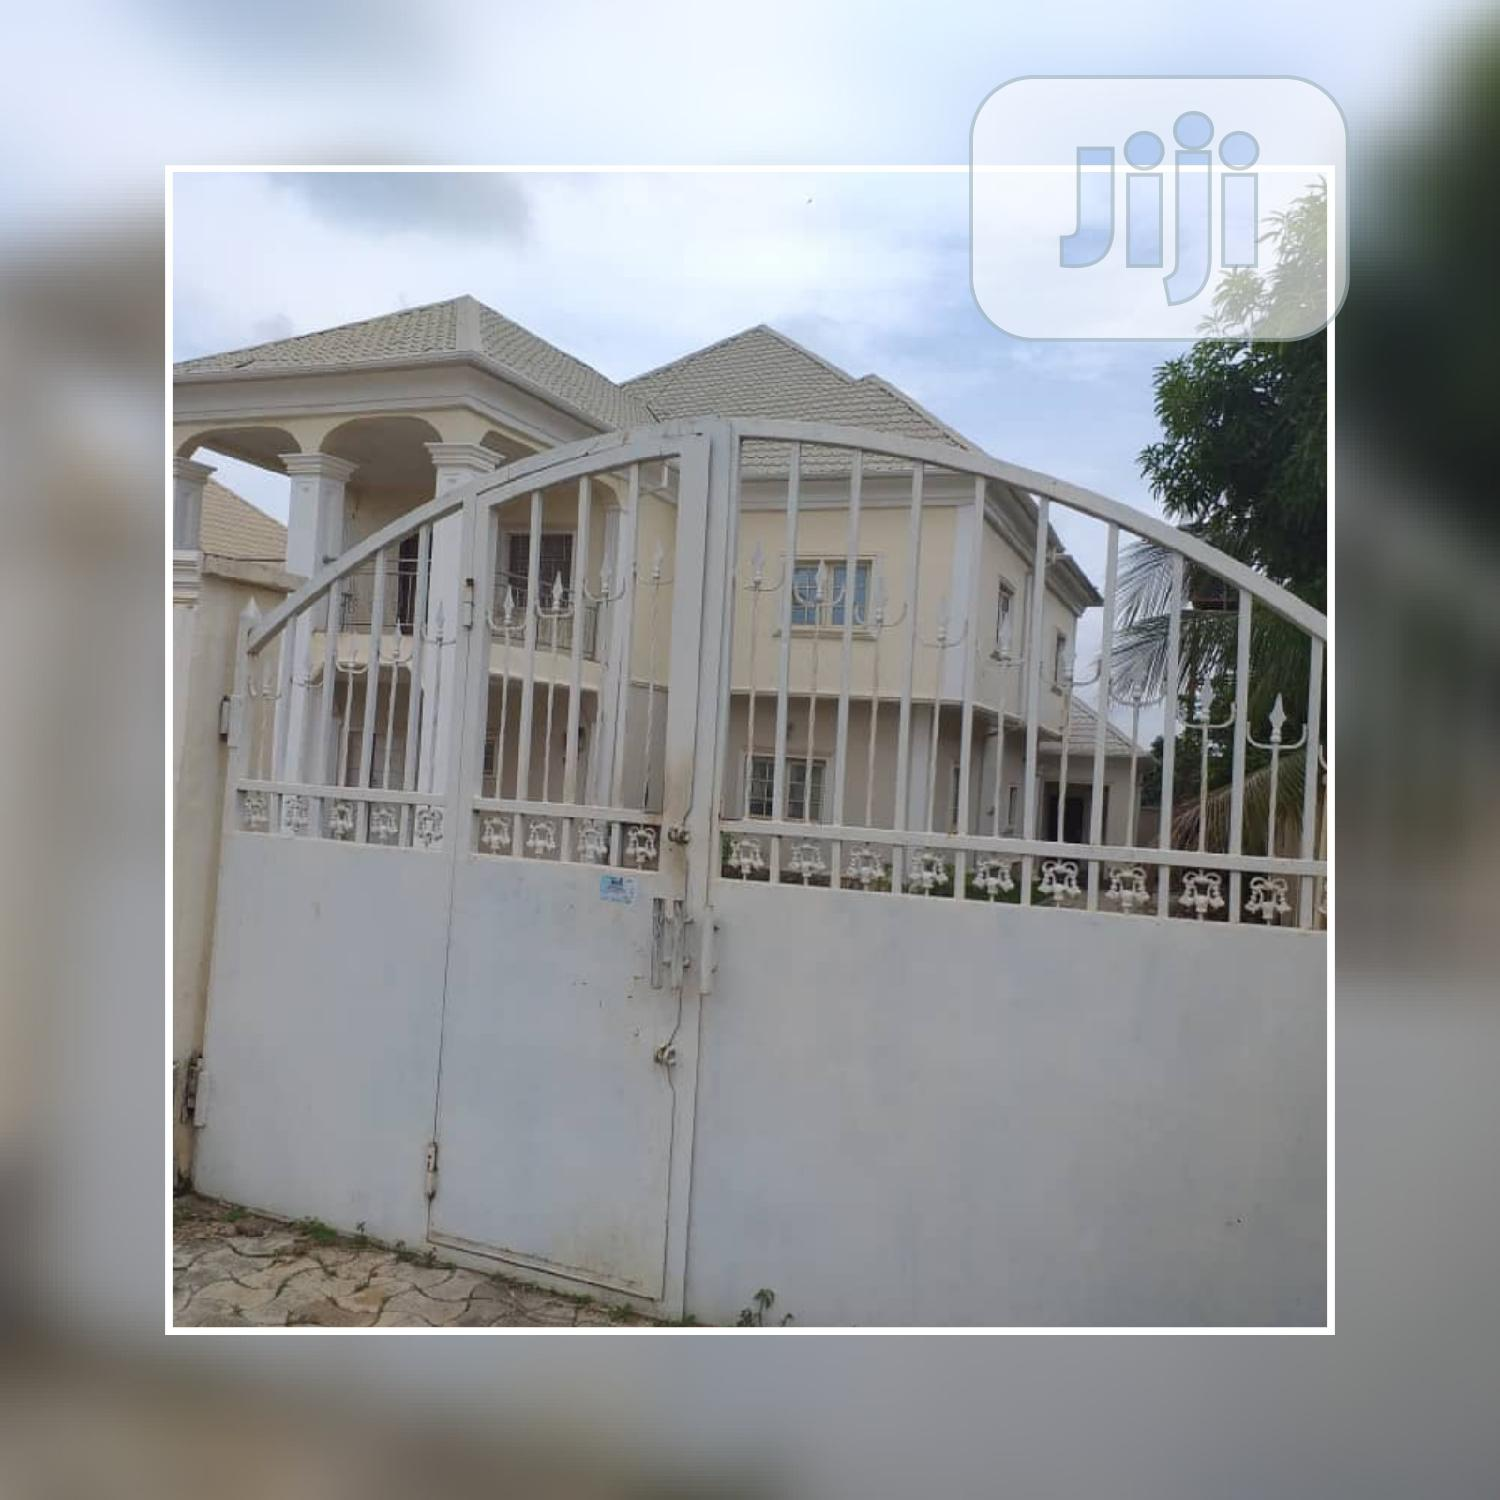 4 Bedroom Fully Detached Duplex   Houses & Apartments For Sale for sale in Gwarinpa, Abuja (FCT) State, Nigeria